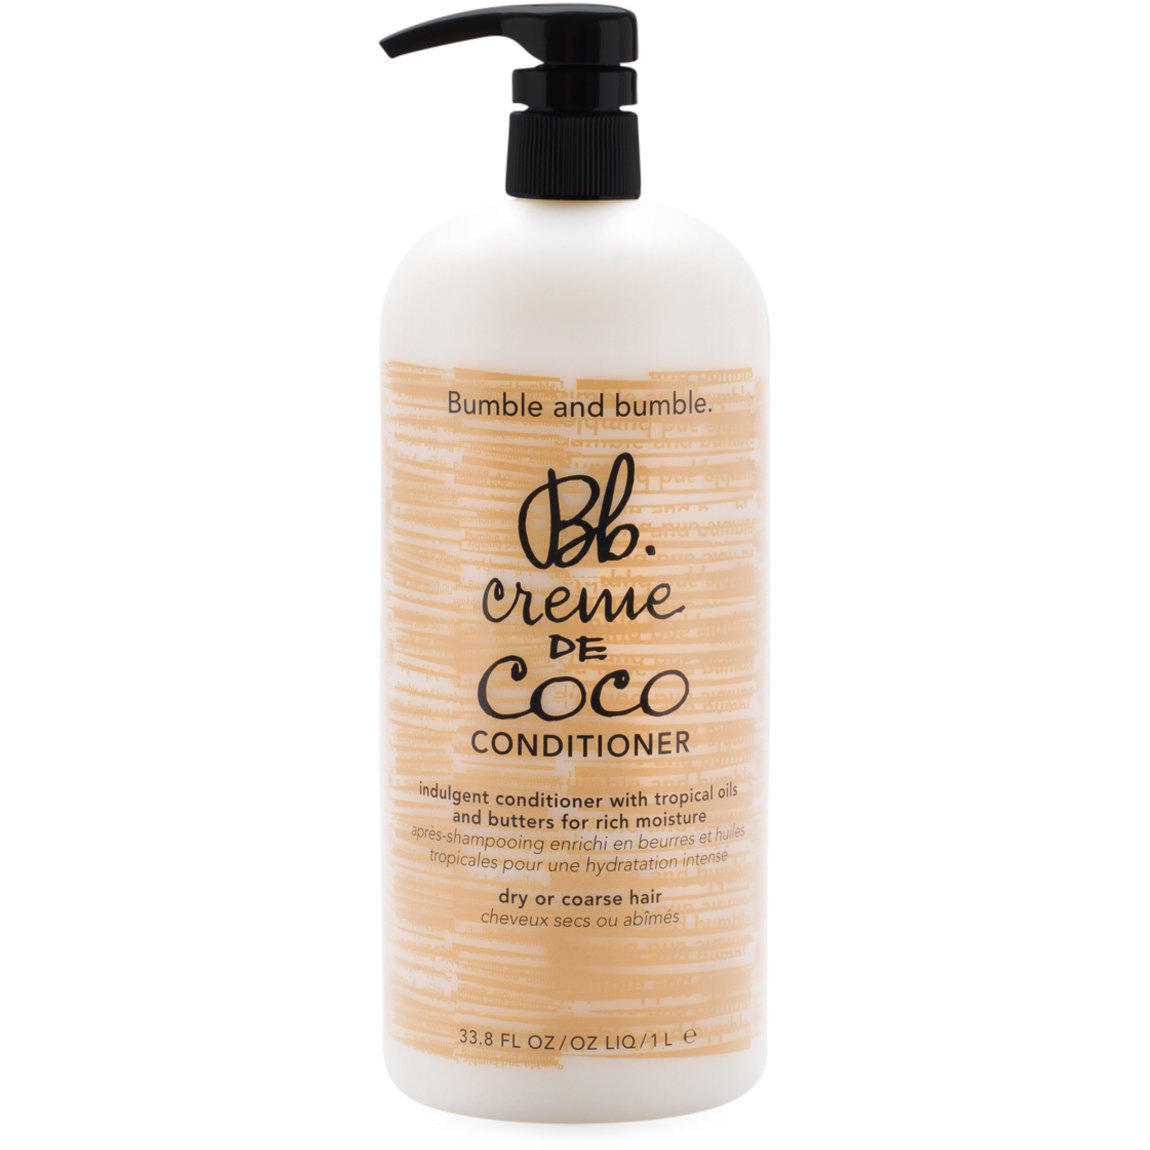 Bumble and bumble. Creme de Coco Conditioner 1 L product swatch.